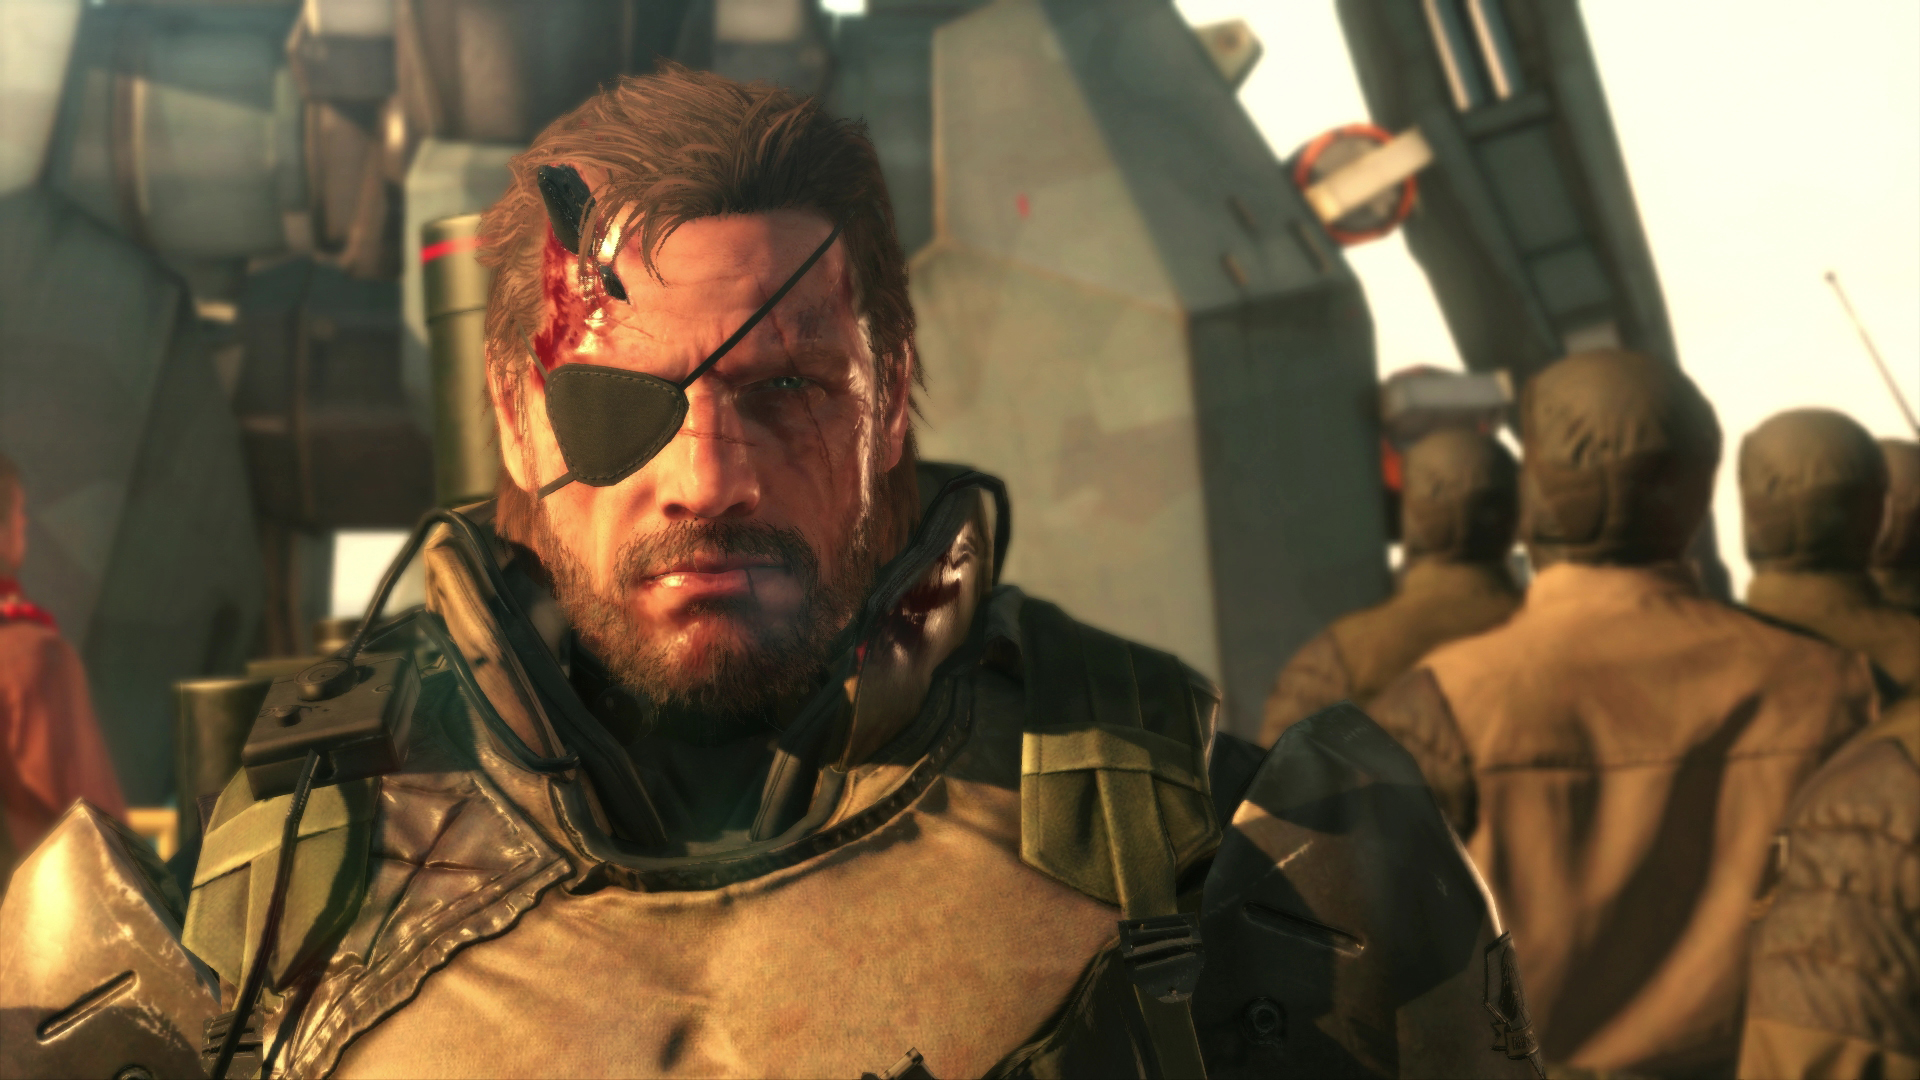 Metal Gear Solid 5 is the best and most disappointing game of the